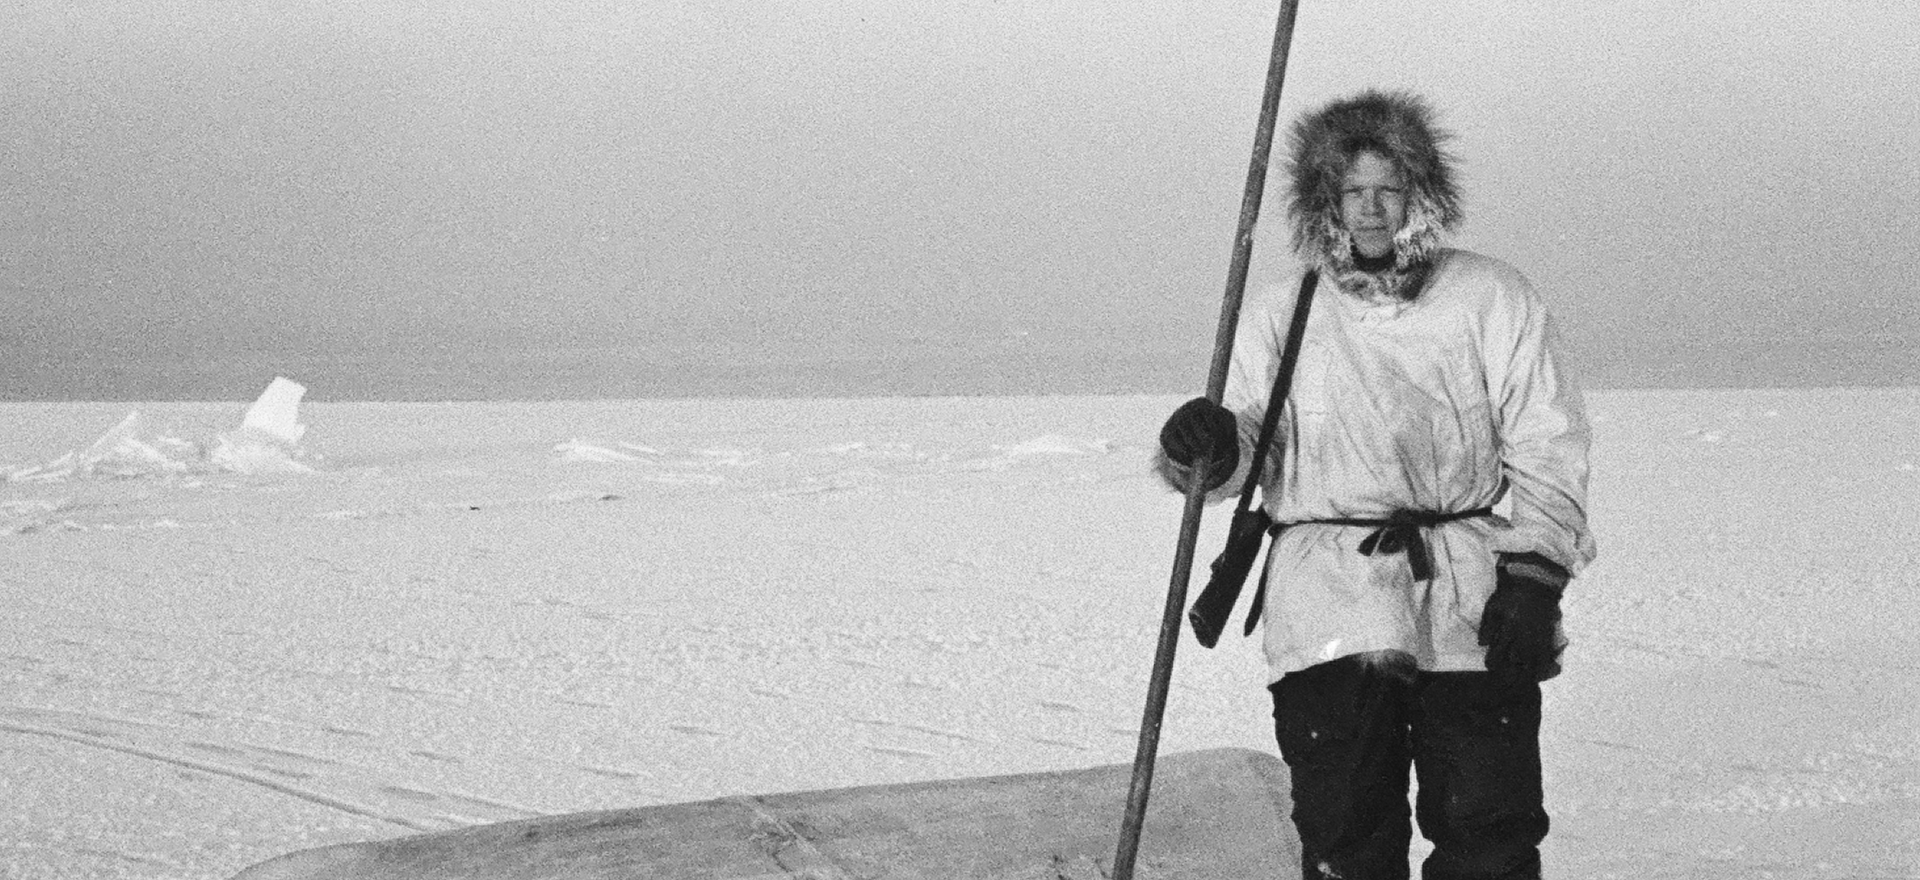 Richard Nelson on young ice with open water in the background. Rifle over his shoulder, he holds an unaaq used to test ice thickness. The umiaqaluraq is used to retrieve seals. (Wainwright, Alaska 1964)